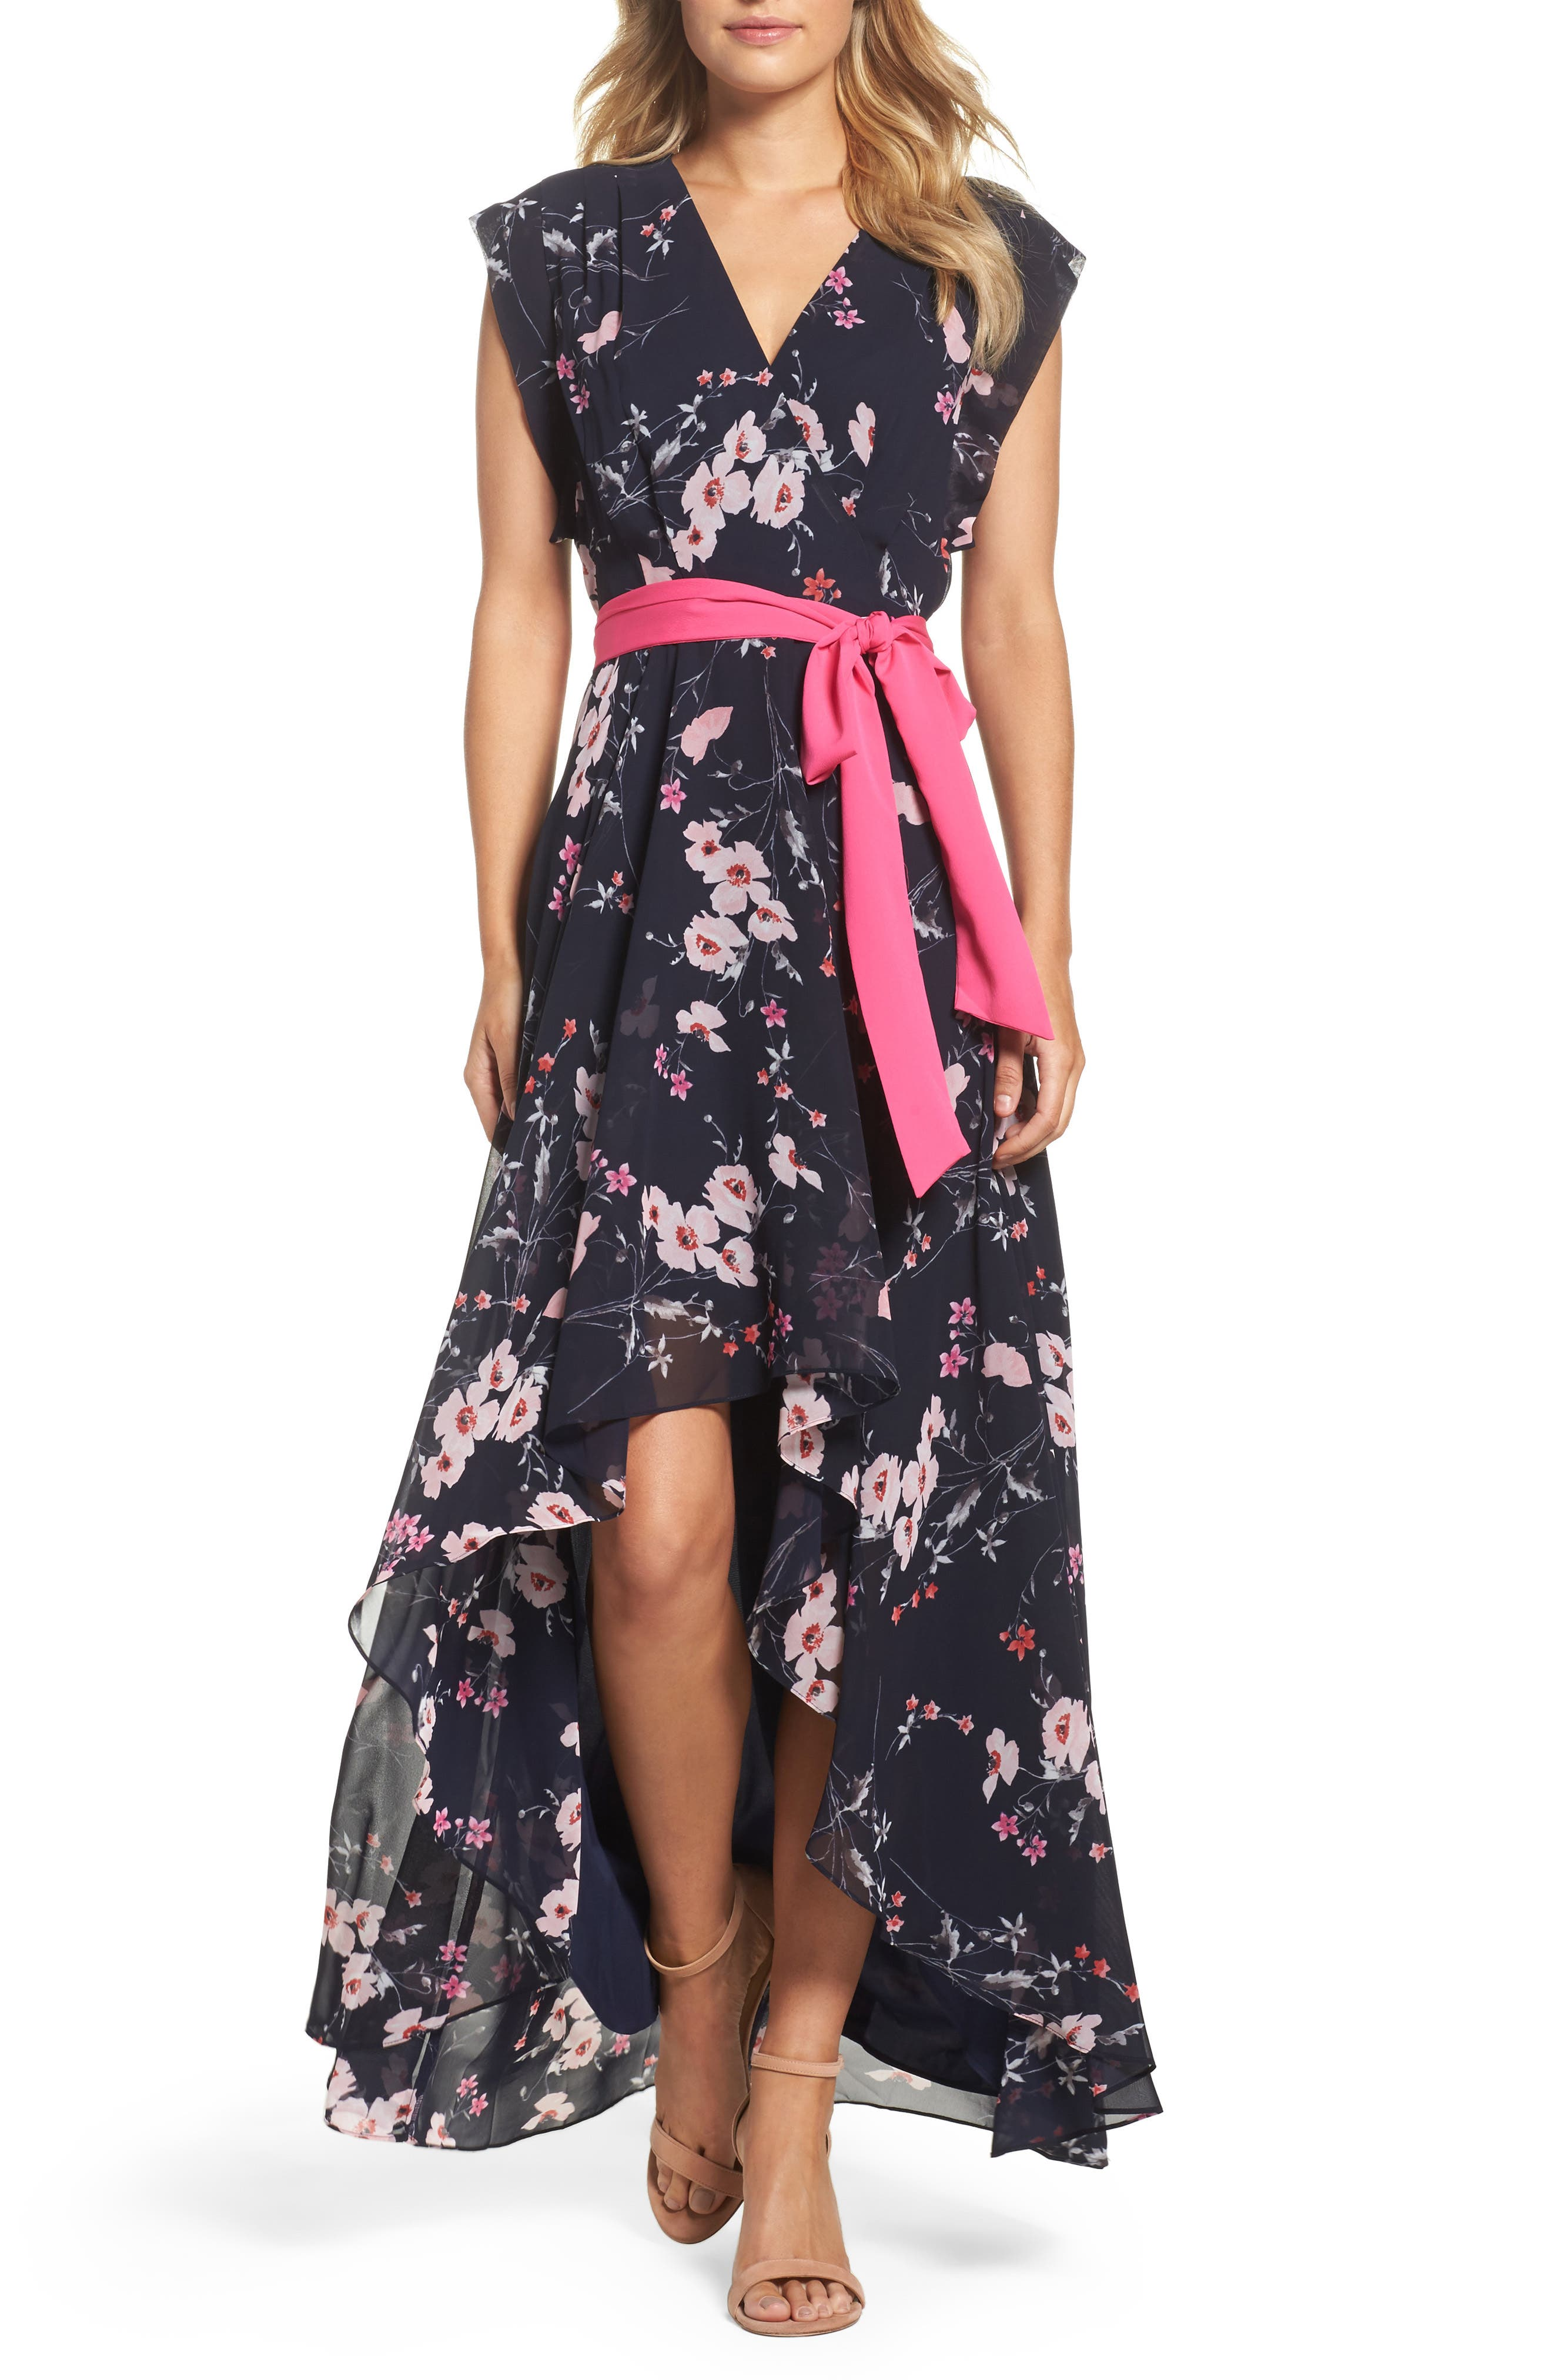 ELIZA J, High/Low Floral Faux Wrap Dress, Main thumbnail 1, color, NAVY/ PINK